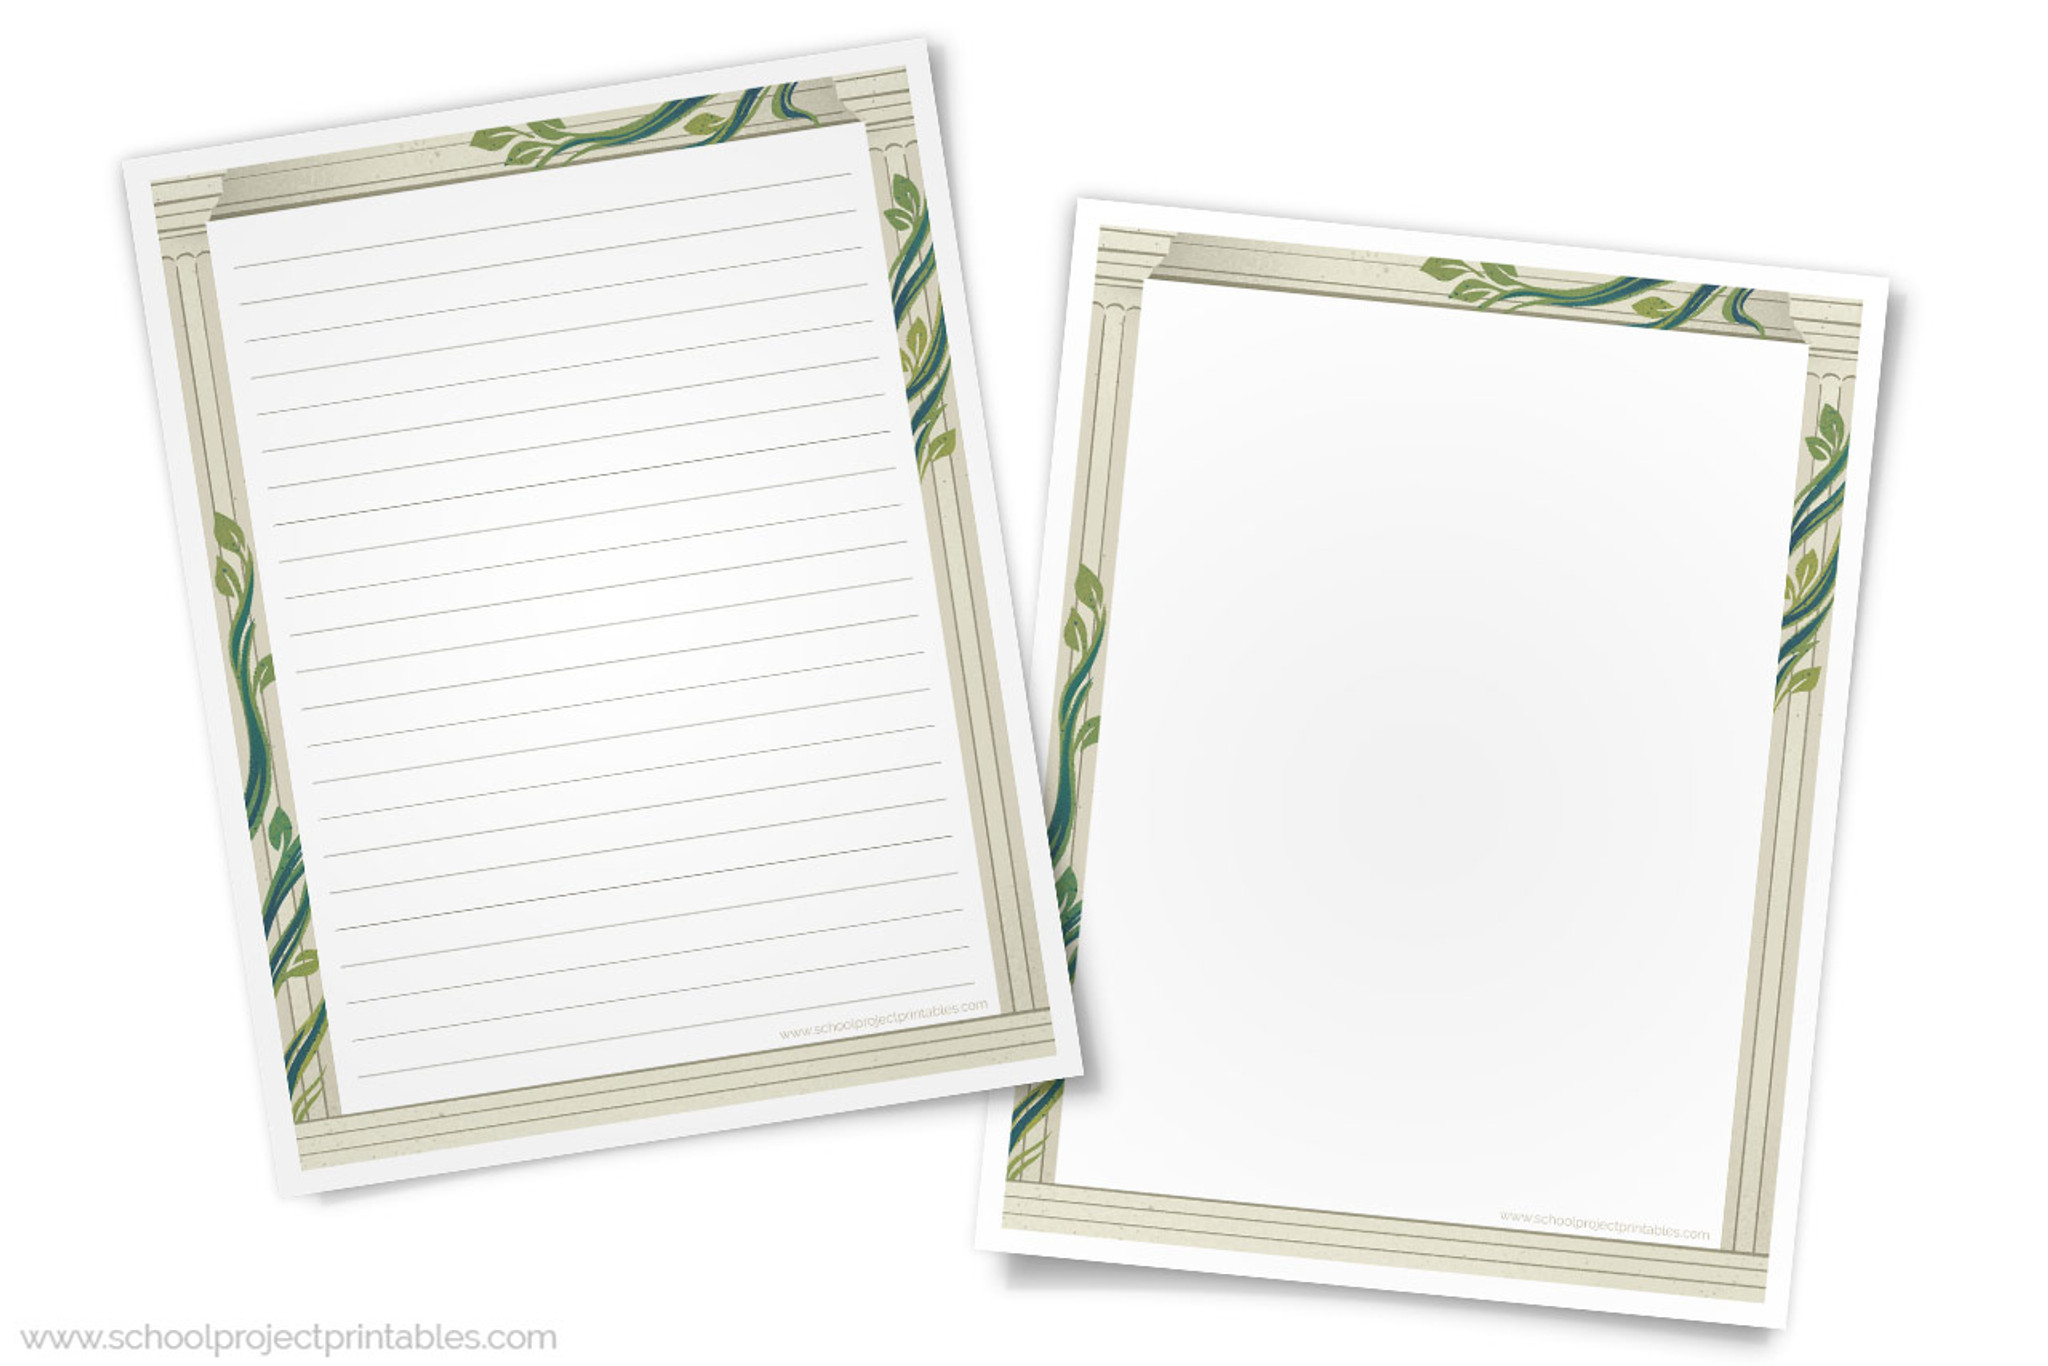 graphic relating to Printable Lined Paper With Border named Historical Rome Creating Templates - Paper with Roman Column Border